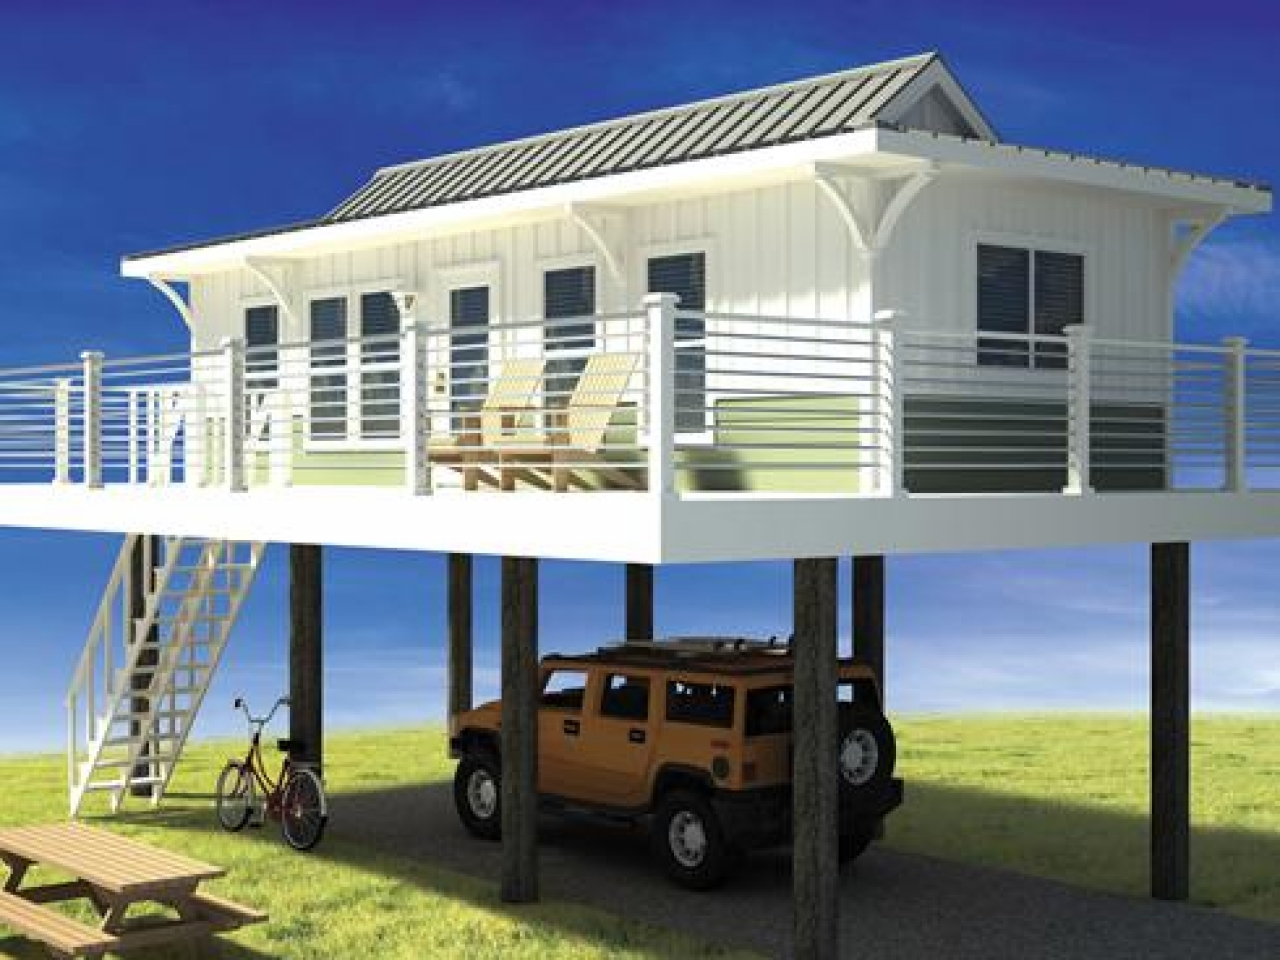 Hawaii House Plans Tiny Beach House On Stilts Tiny Houses In Hawaii House